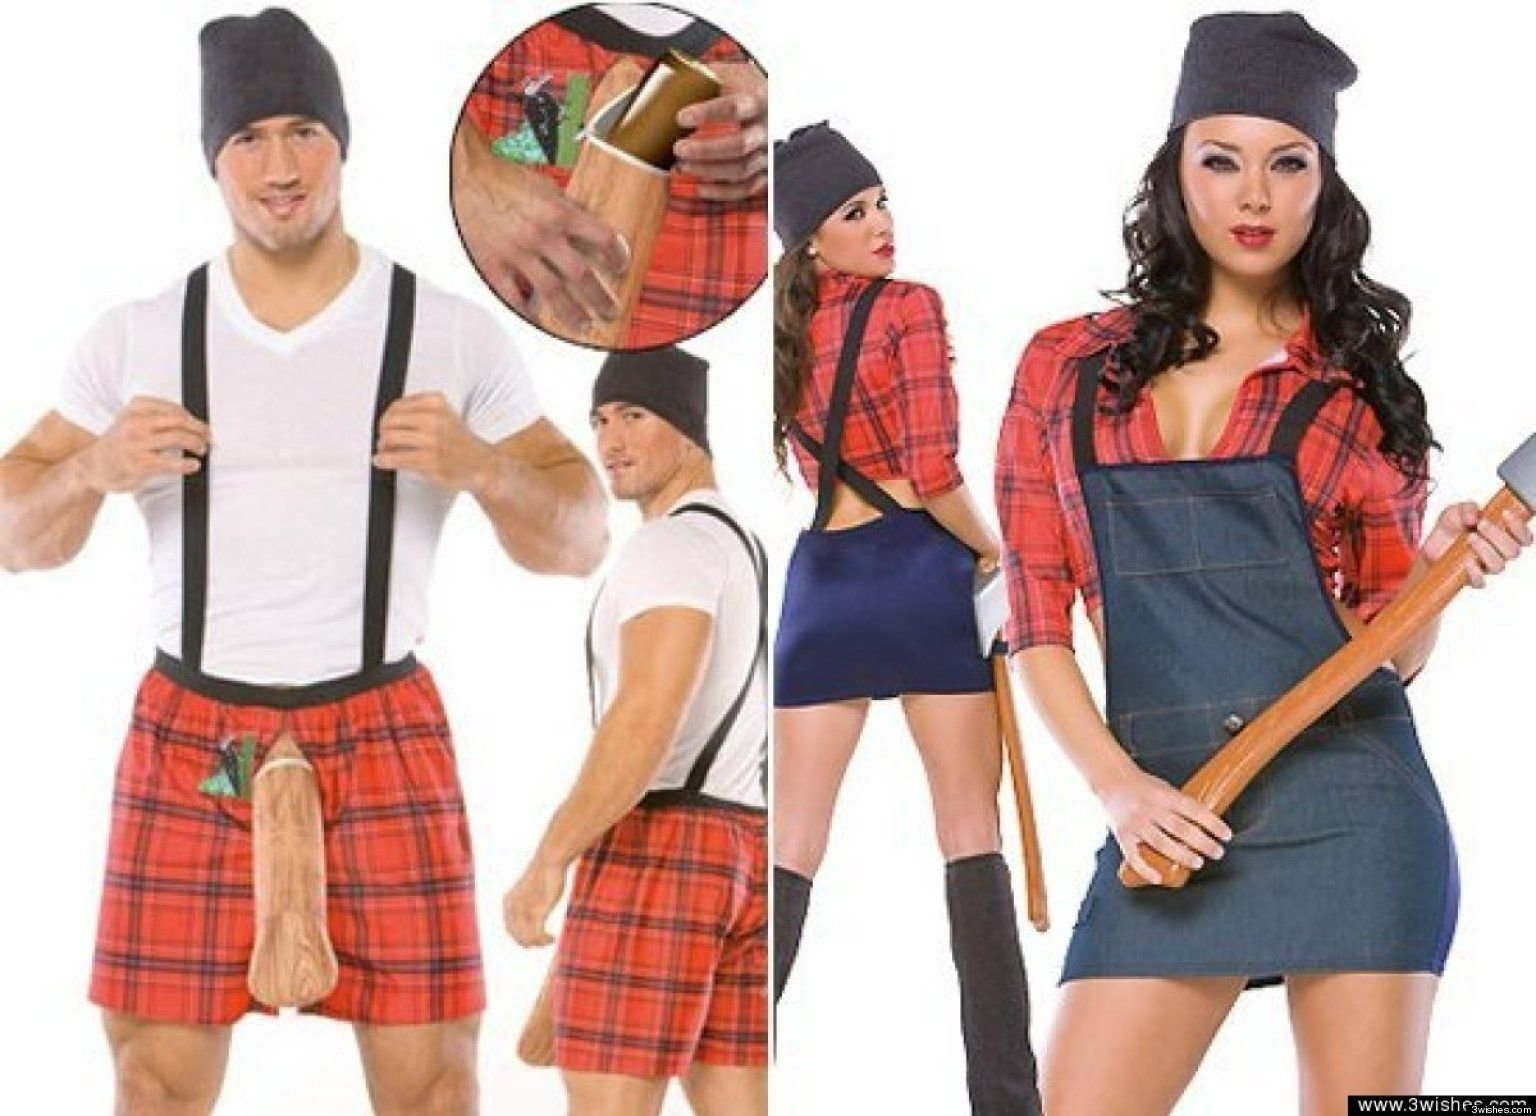 10 Nice Cute Couple Ideas For Halloween look 5 extremely awkward couples costumes costumes couple 11  sc 1 st  Unique Ideas 2018 & 10 Nice Cute Couple Ideas For Halloween